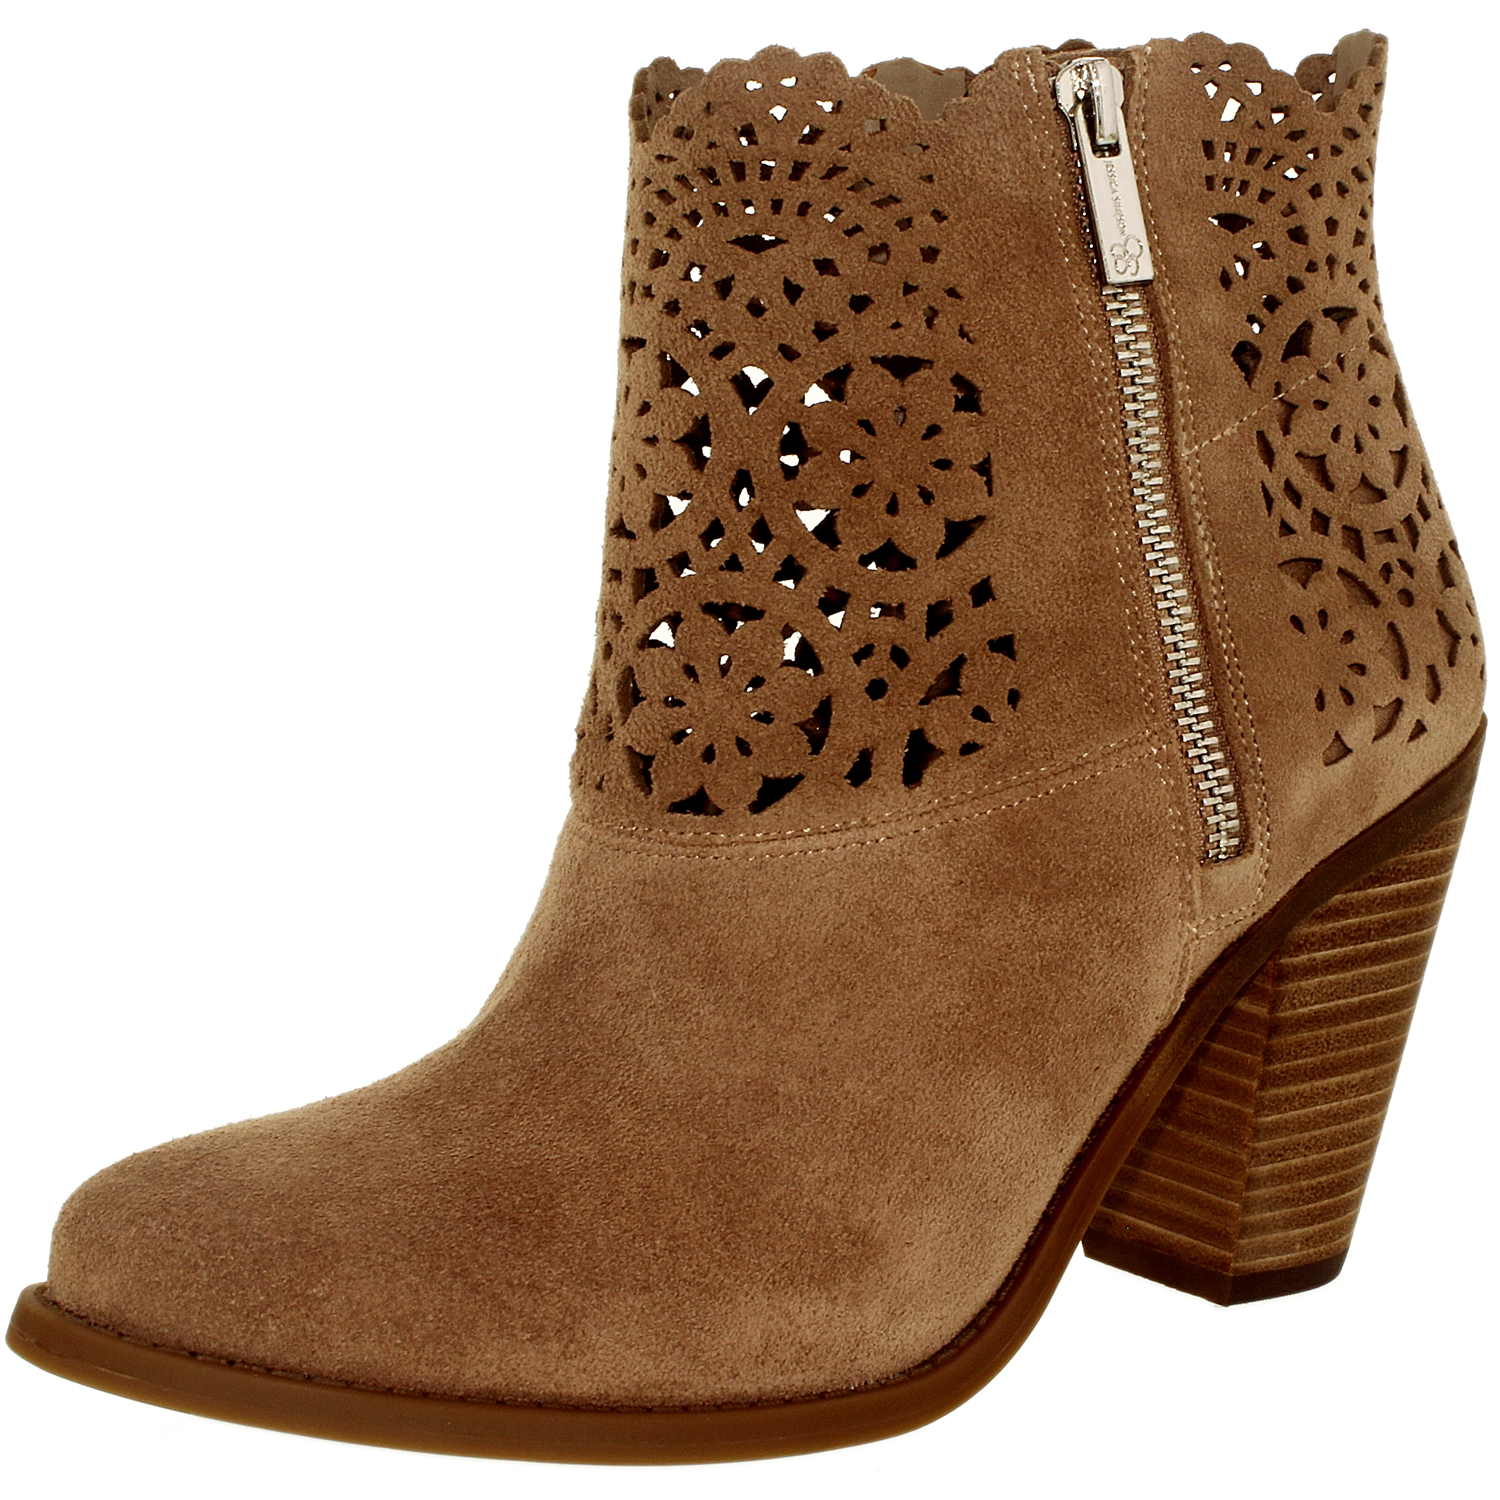 Jessica Simpson Women's Cachelle Suede Warm Taupe Ankle-High Leather Boot - 9.5M - image 3 of 3